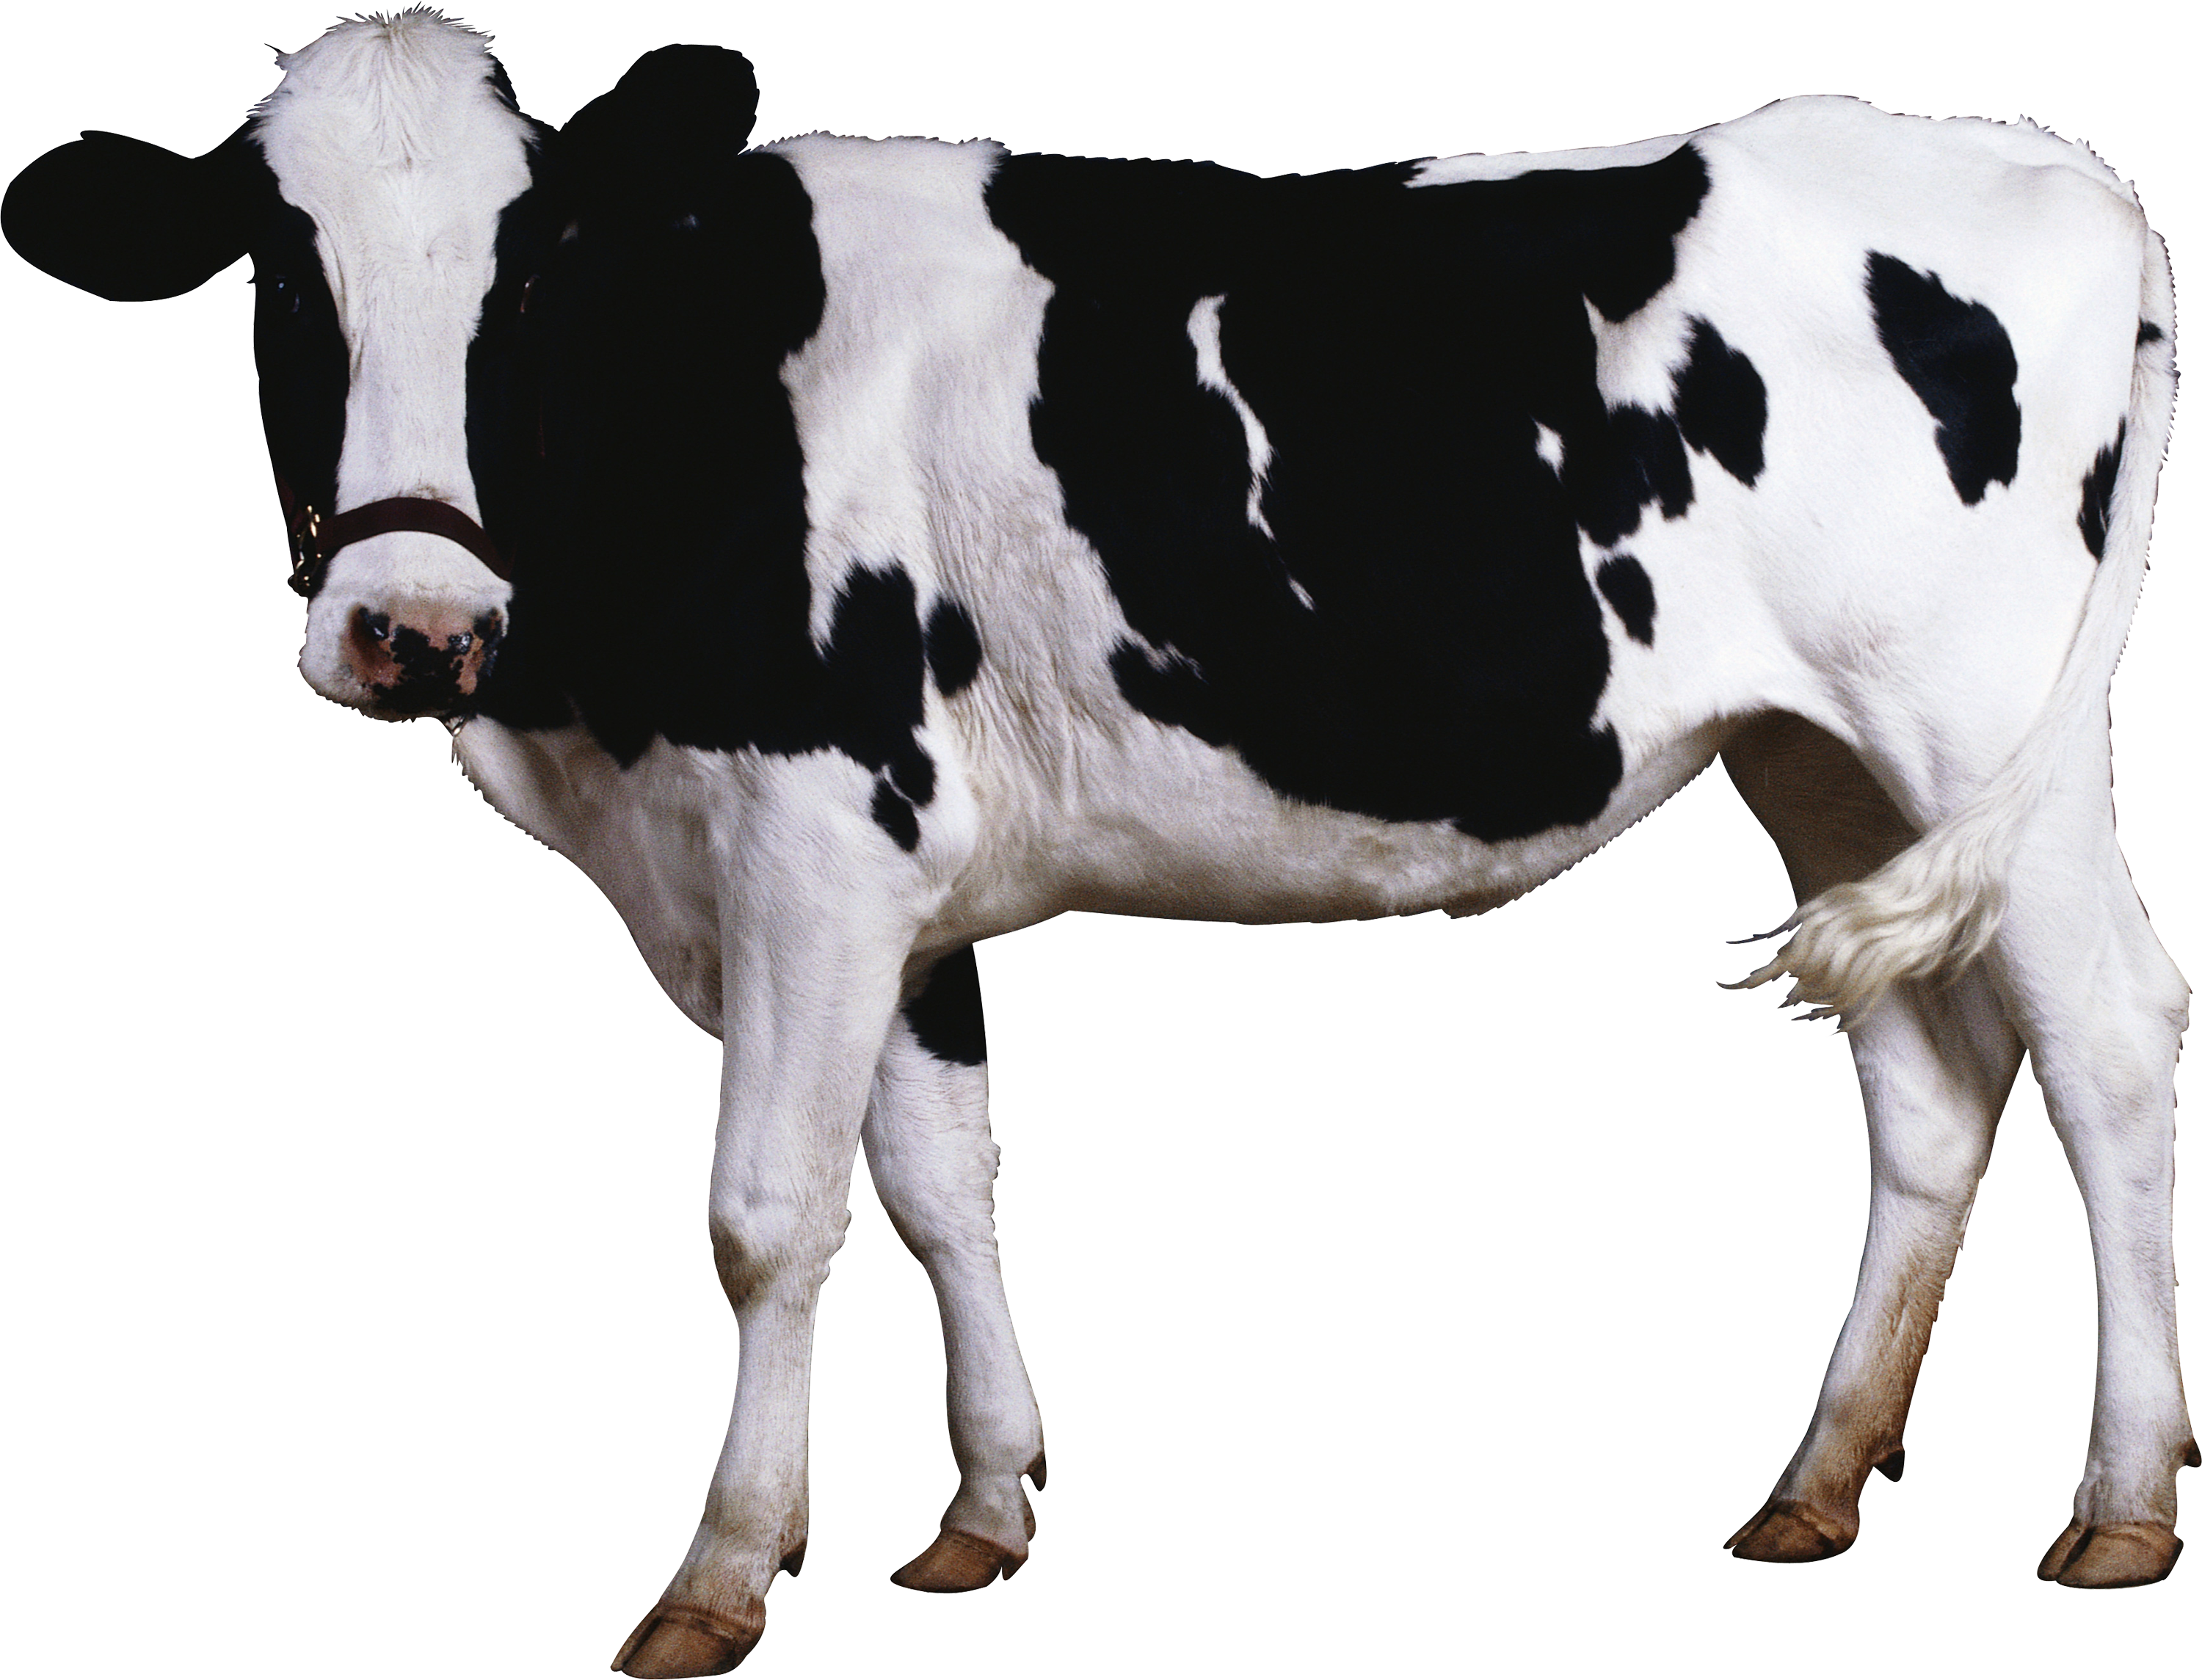 Transparent bull real. Cow png image free